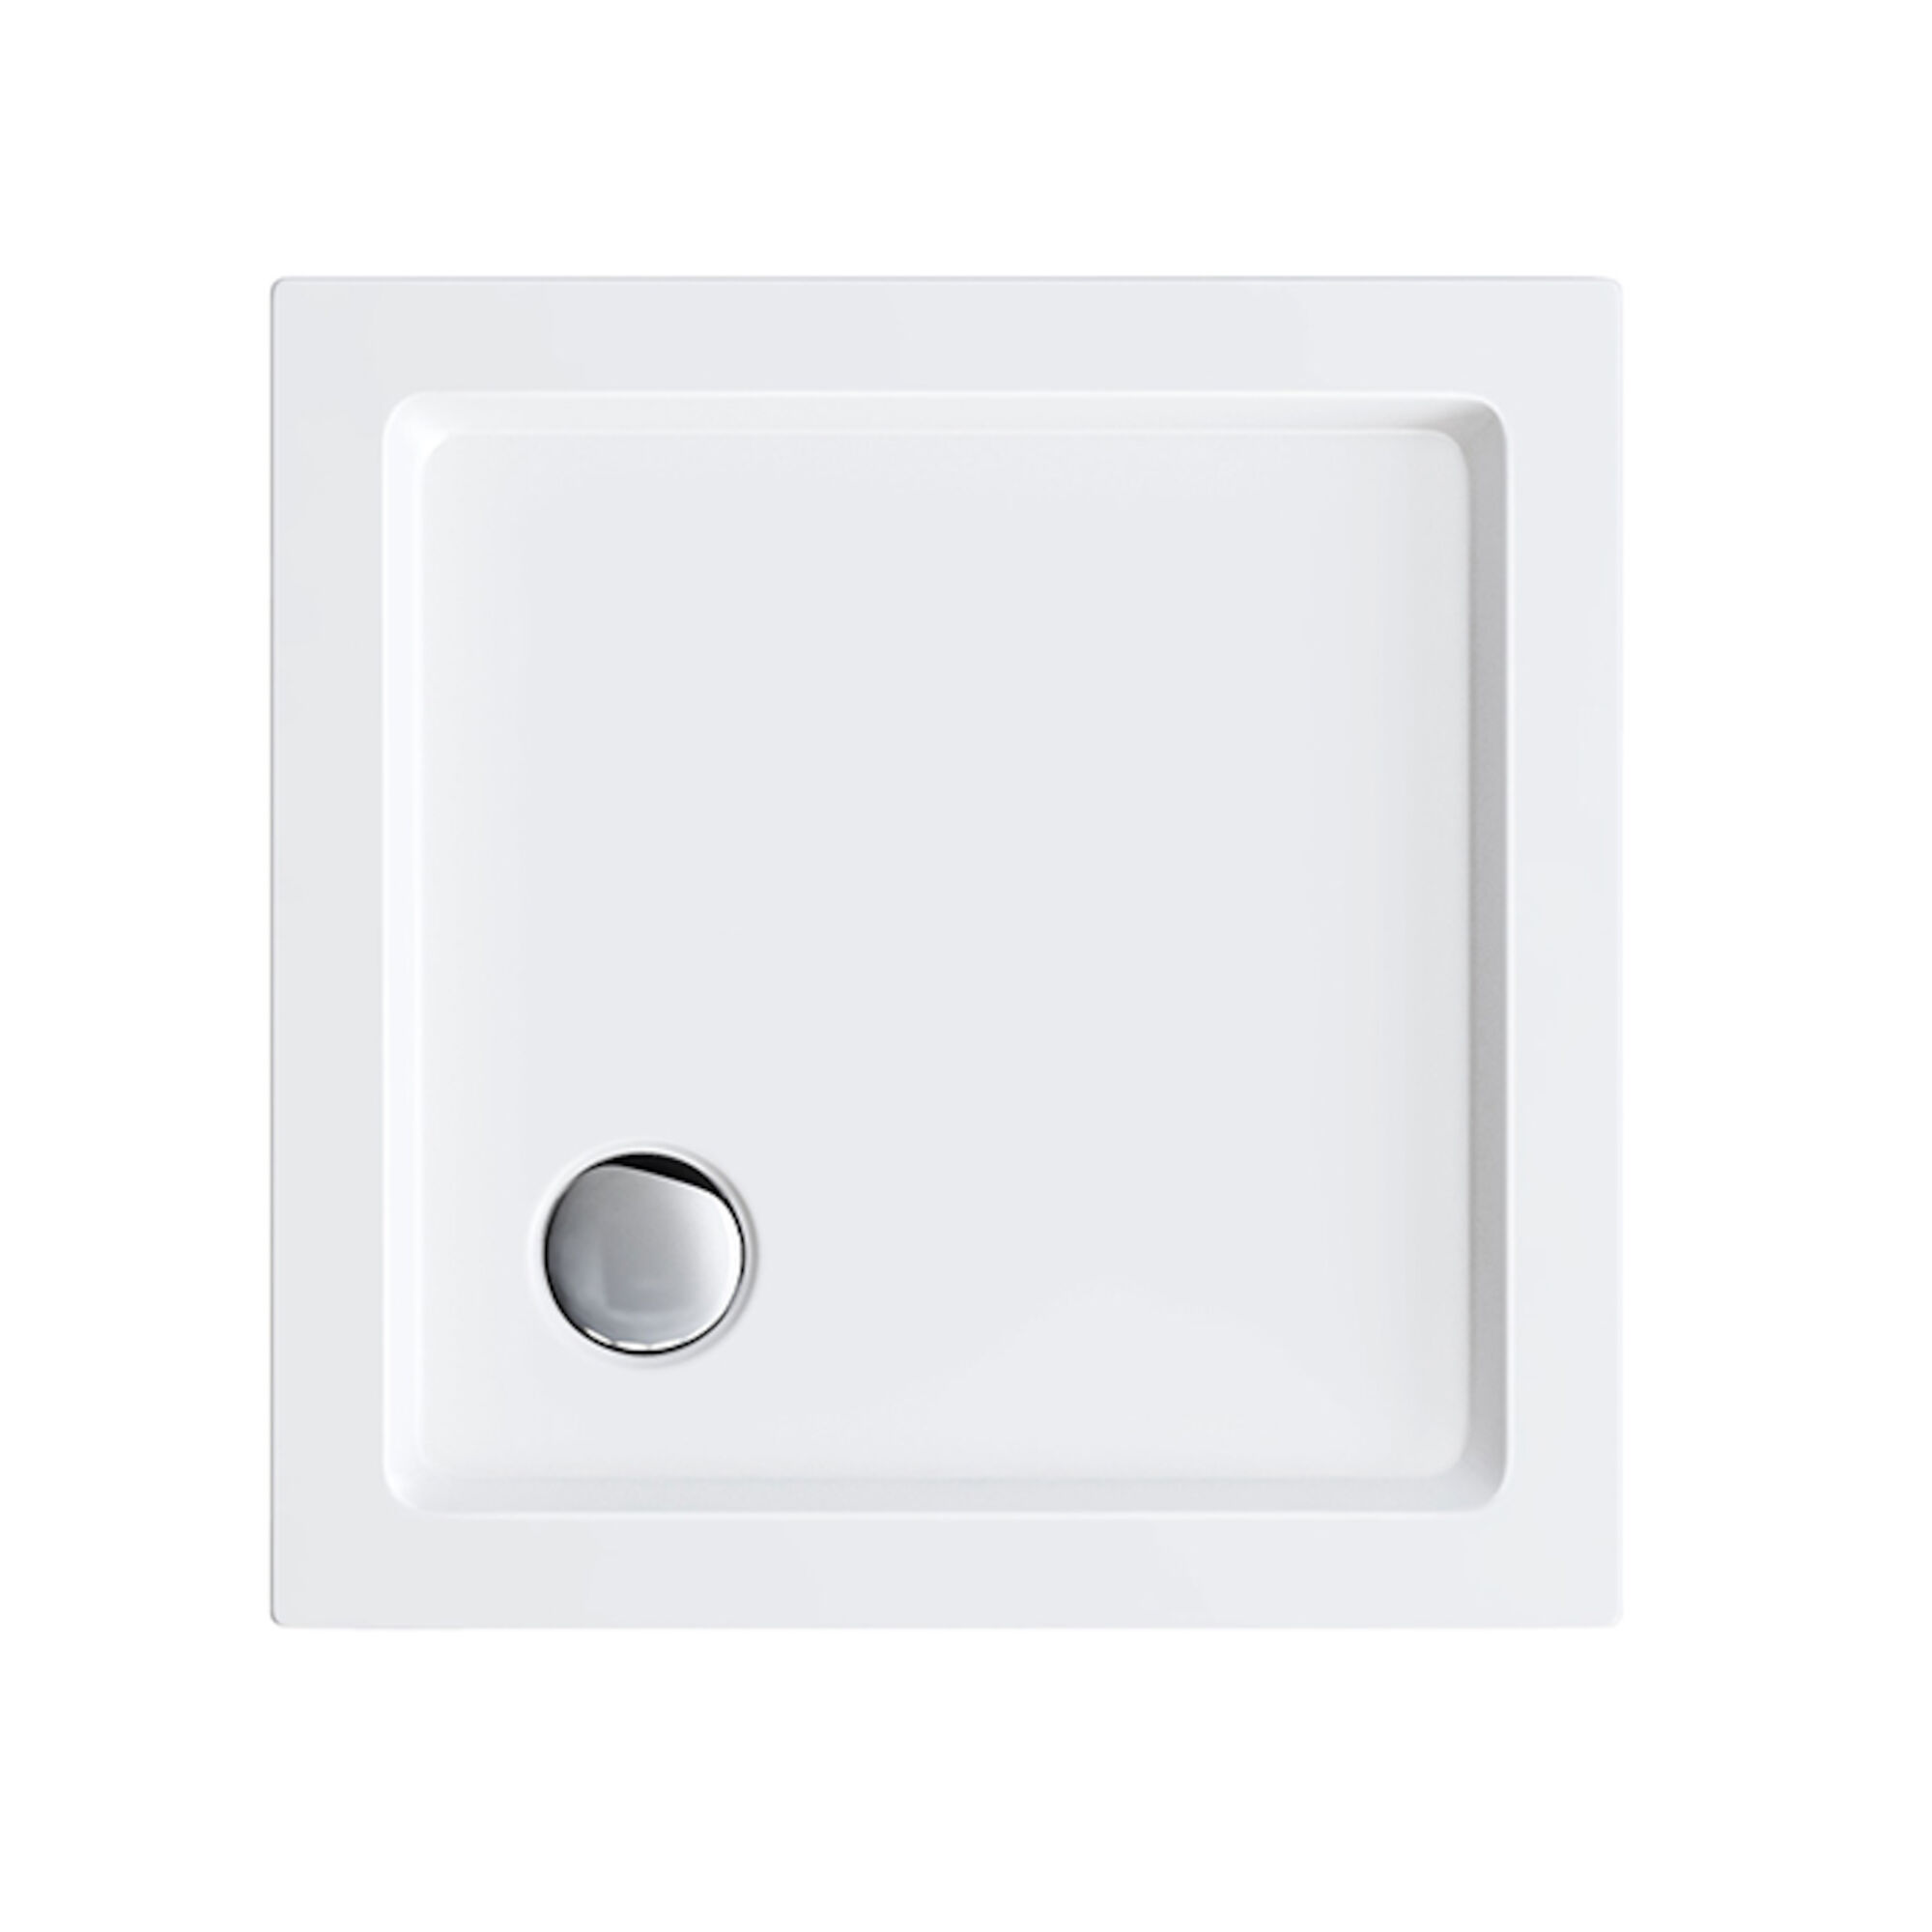 Lot 53 - (LP47) 760x760mm Square White Shower Tray.Strong & Slimline low profile design - lightweight without